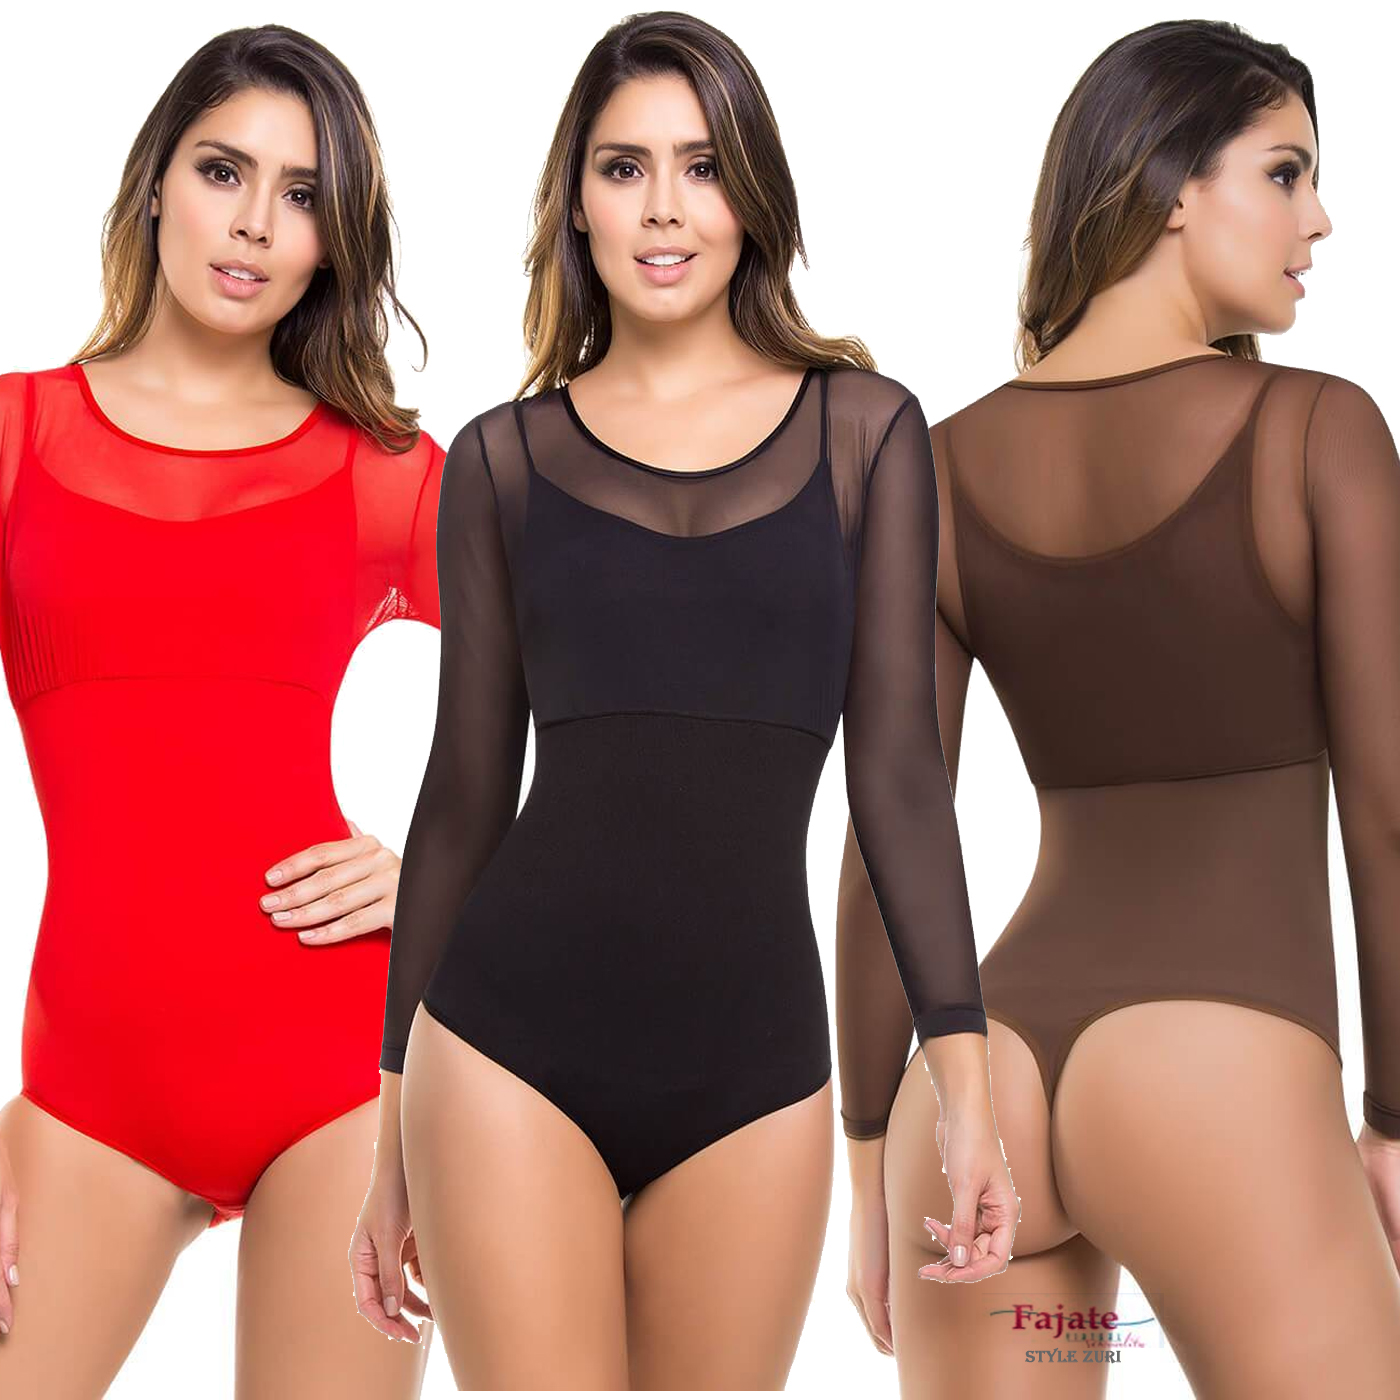 Colombiana Body Suit Control Fajas Waist Shaper Thong Panty Tummy Slimming New